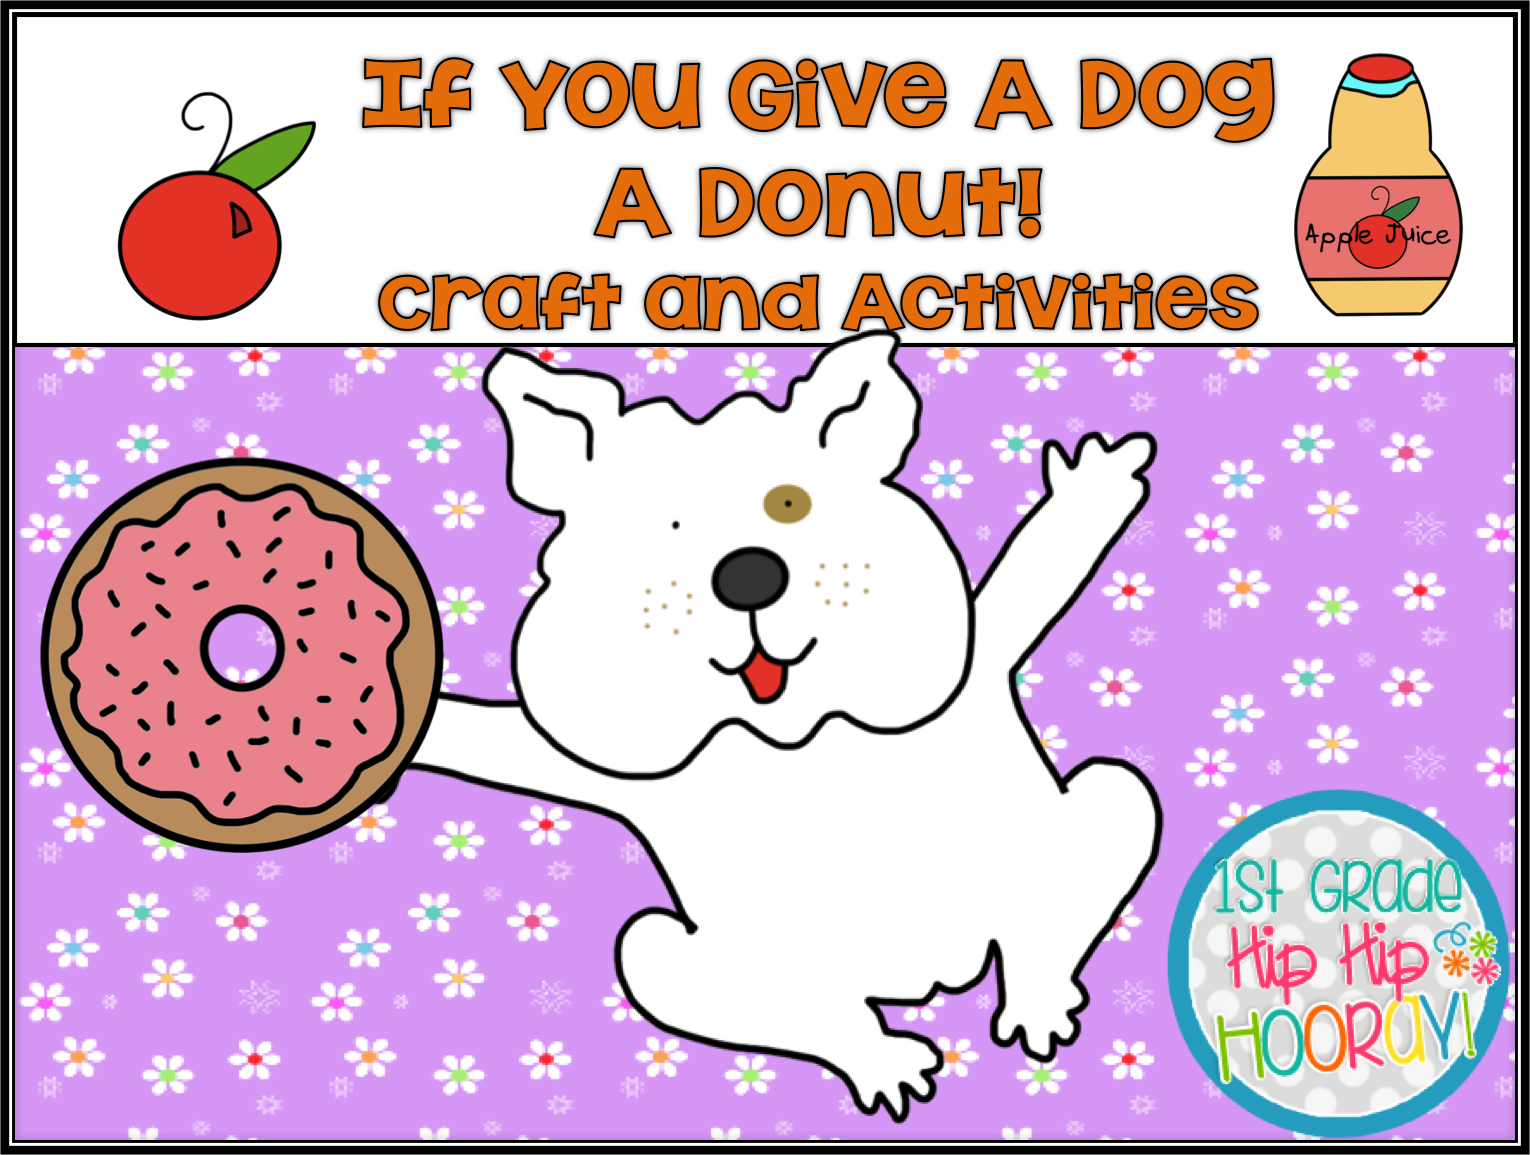 If You Give A Dog A Donut Craft